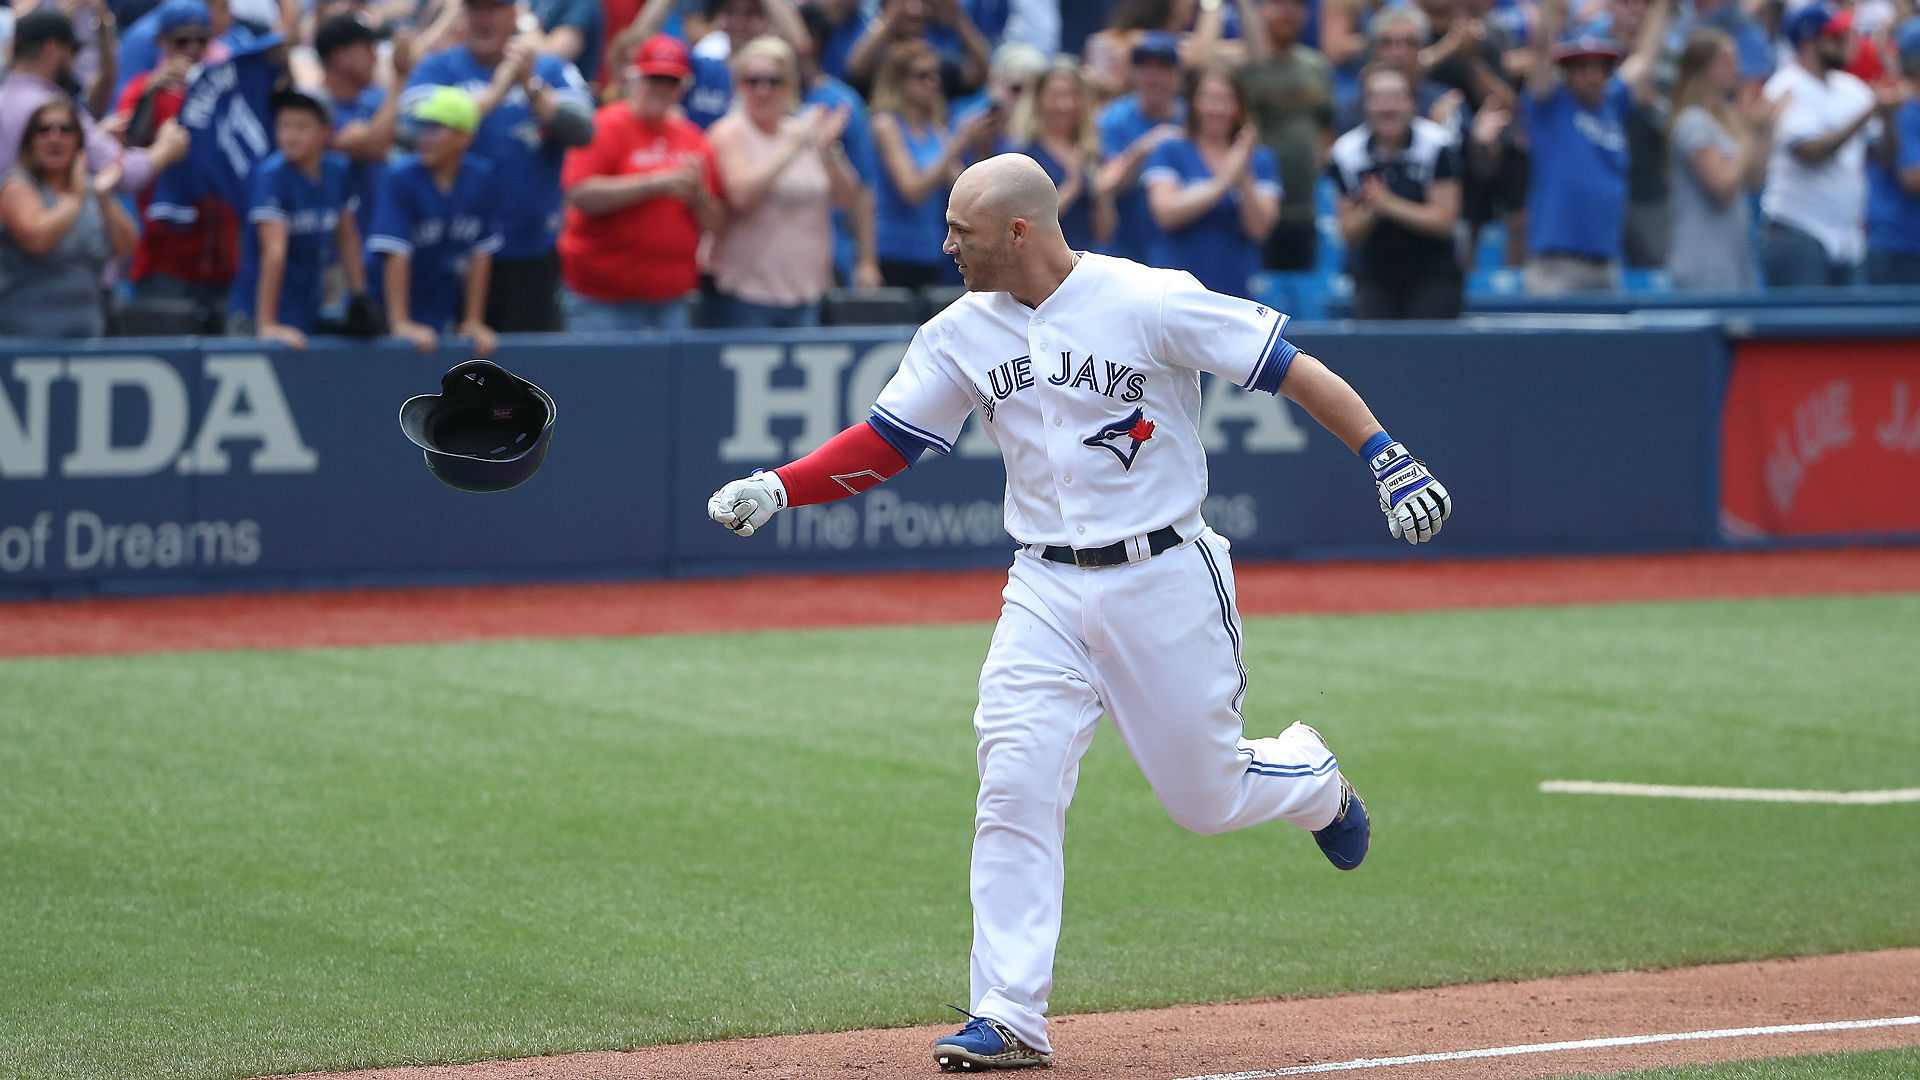 Toronto falls to Cubs in extra innings — Blue Jays notebook